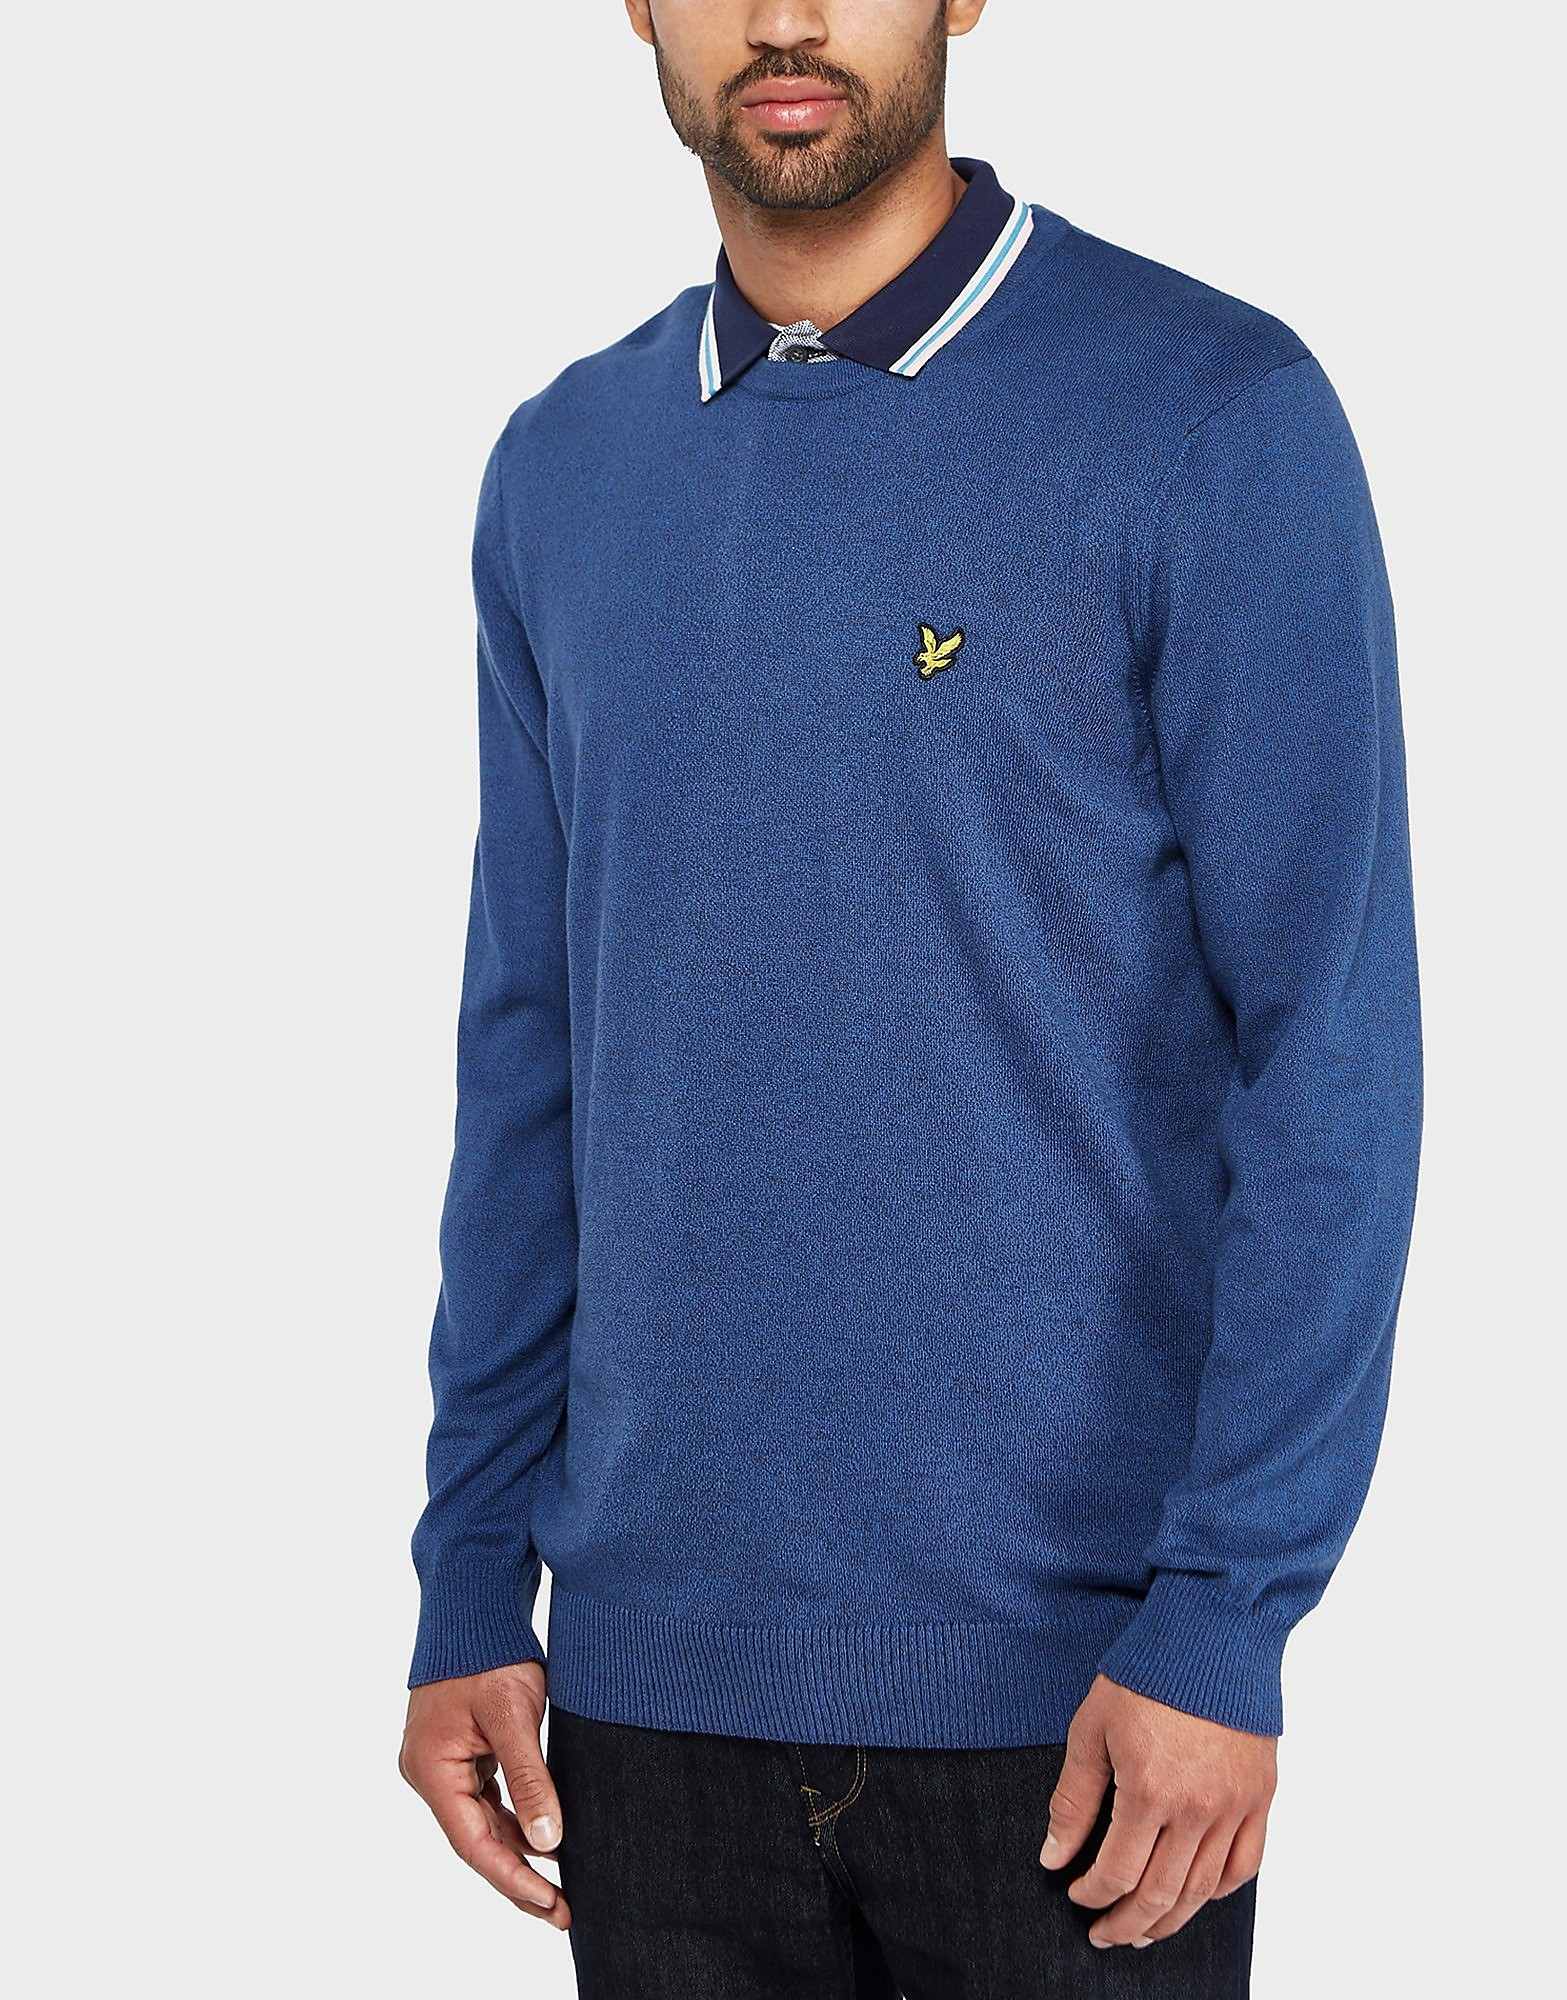 Lyle & Scott Basic Merino Knit